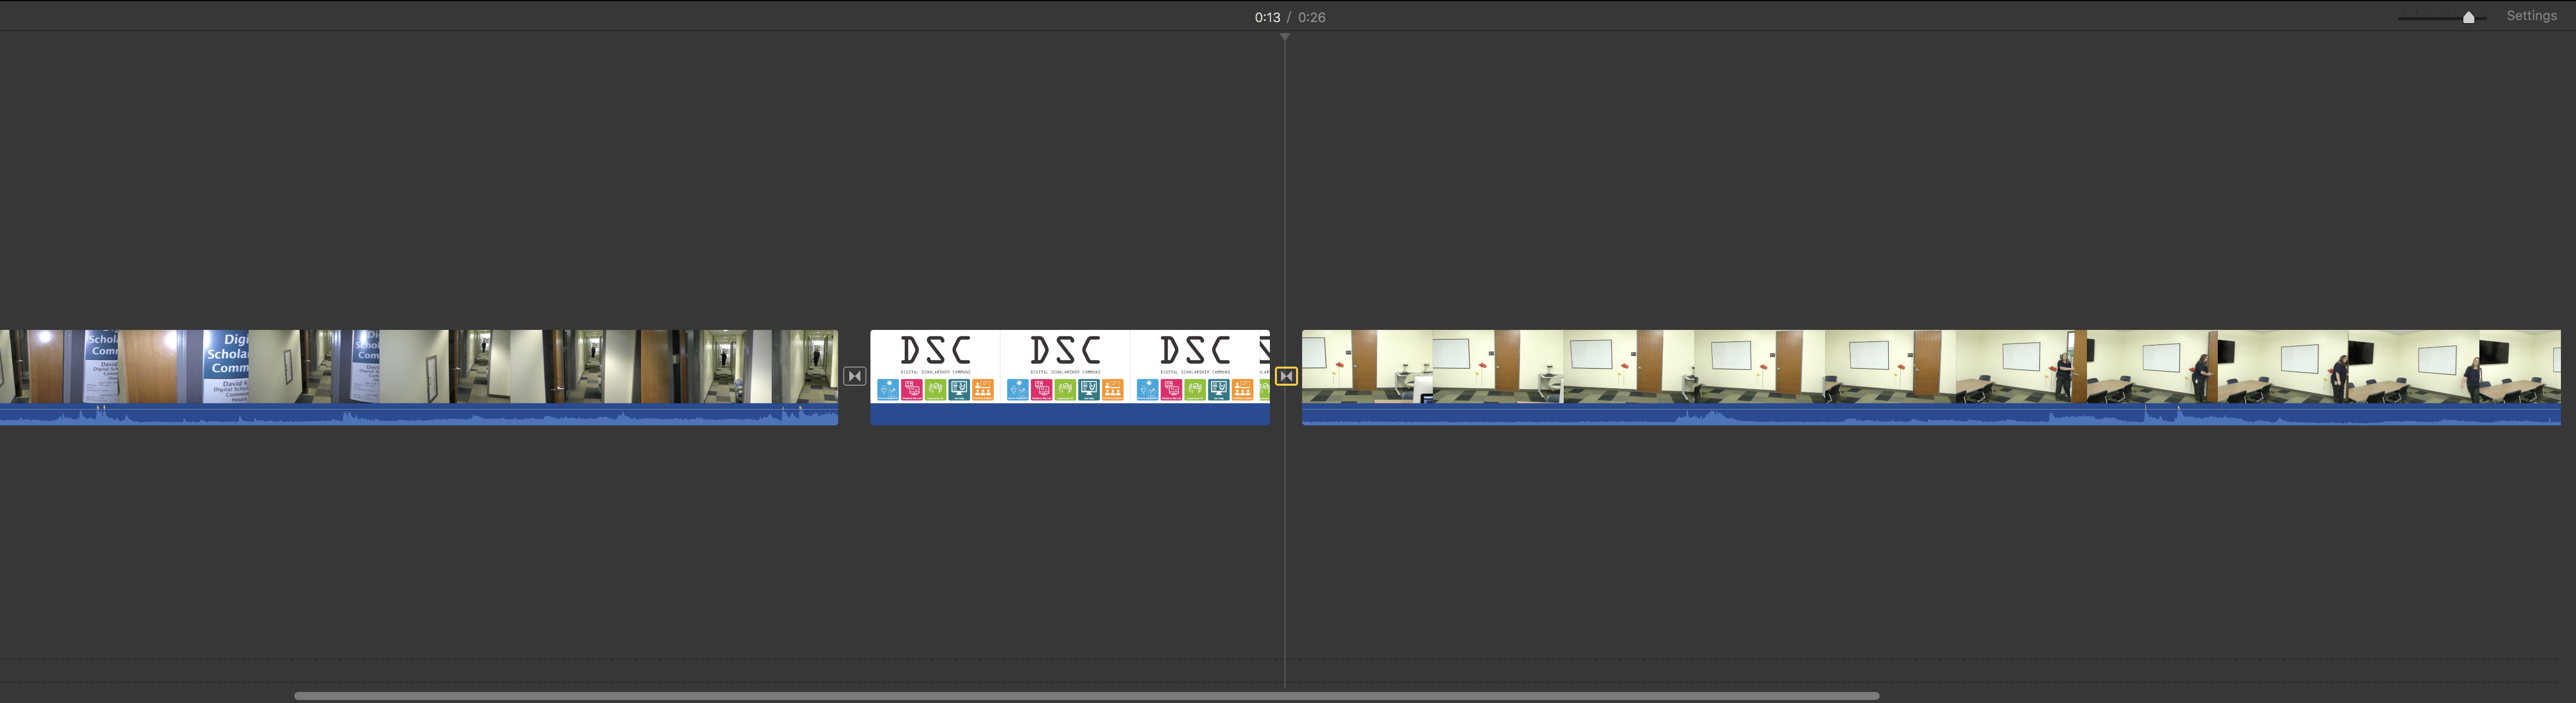 iMovie timeline with added transitions